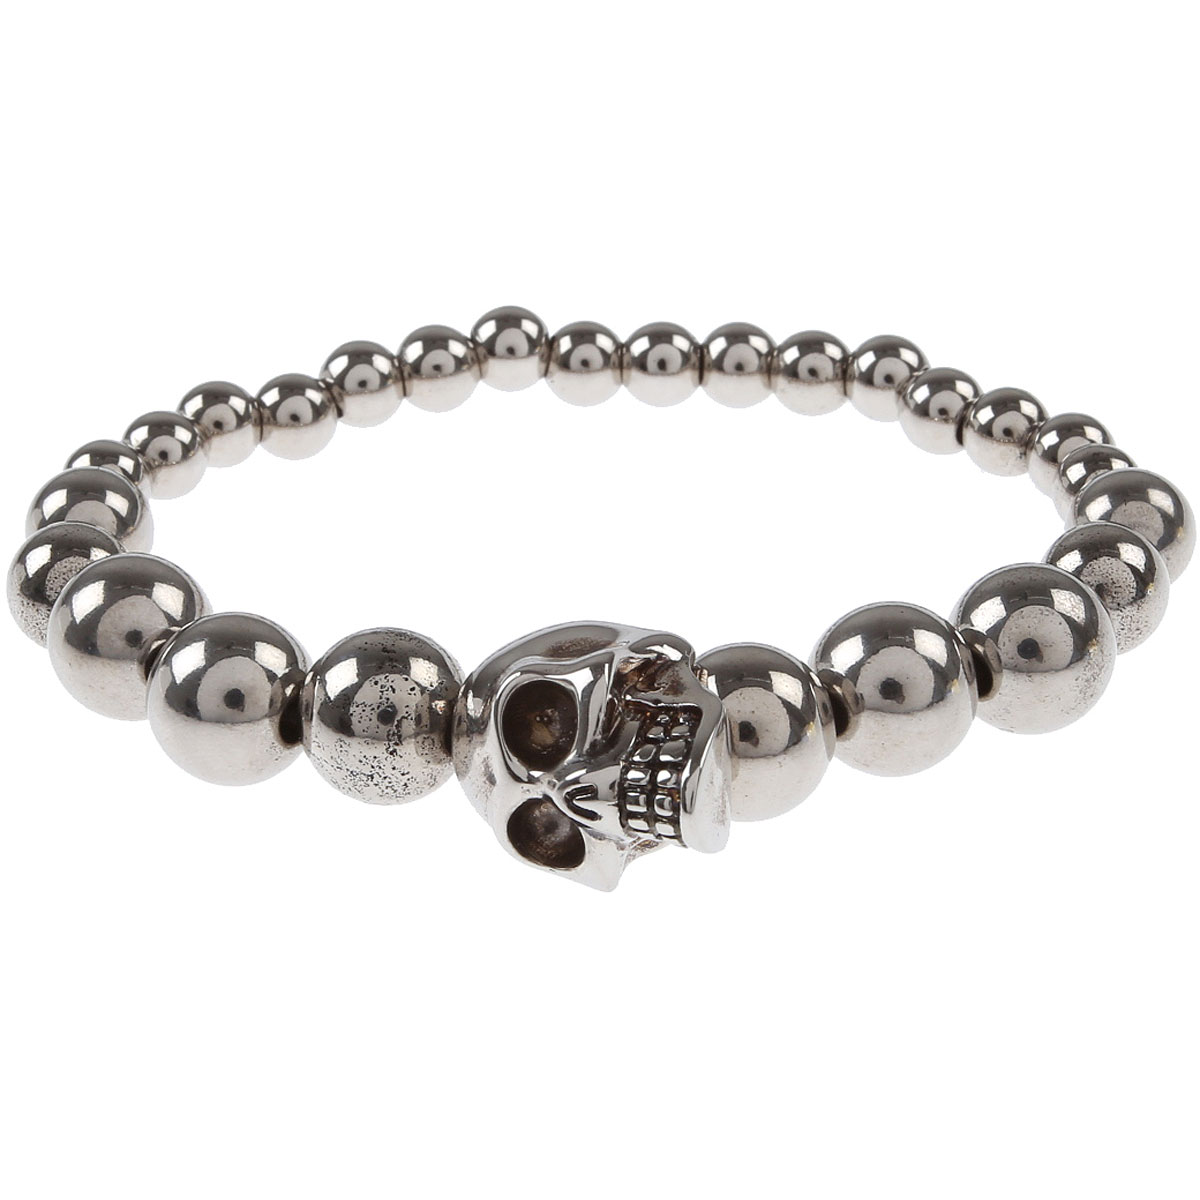 Alexander McQueen Bracelet for Men, Silver, Brass, 2019